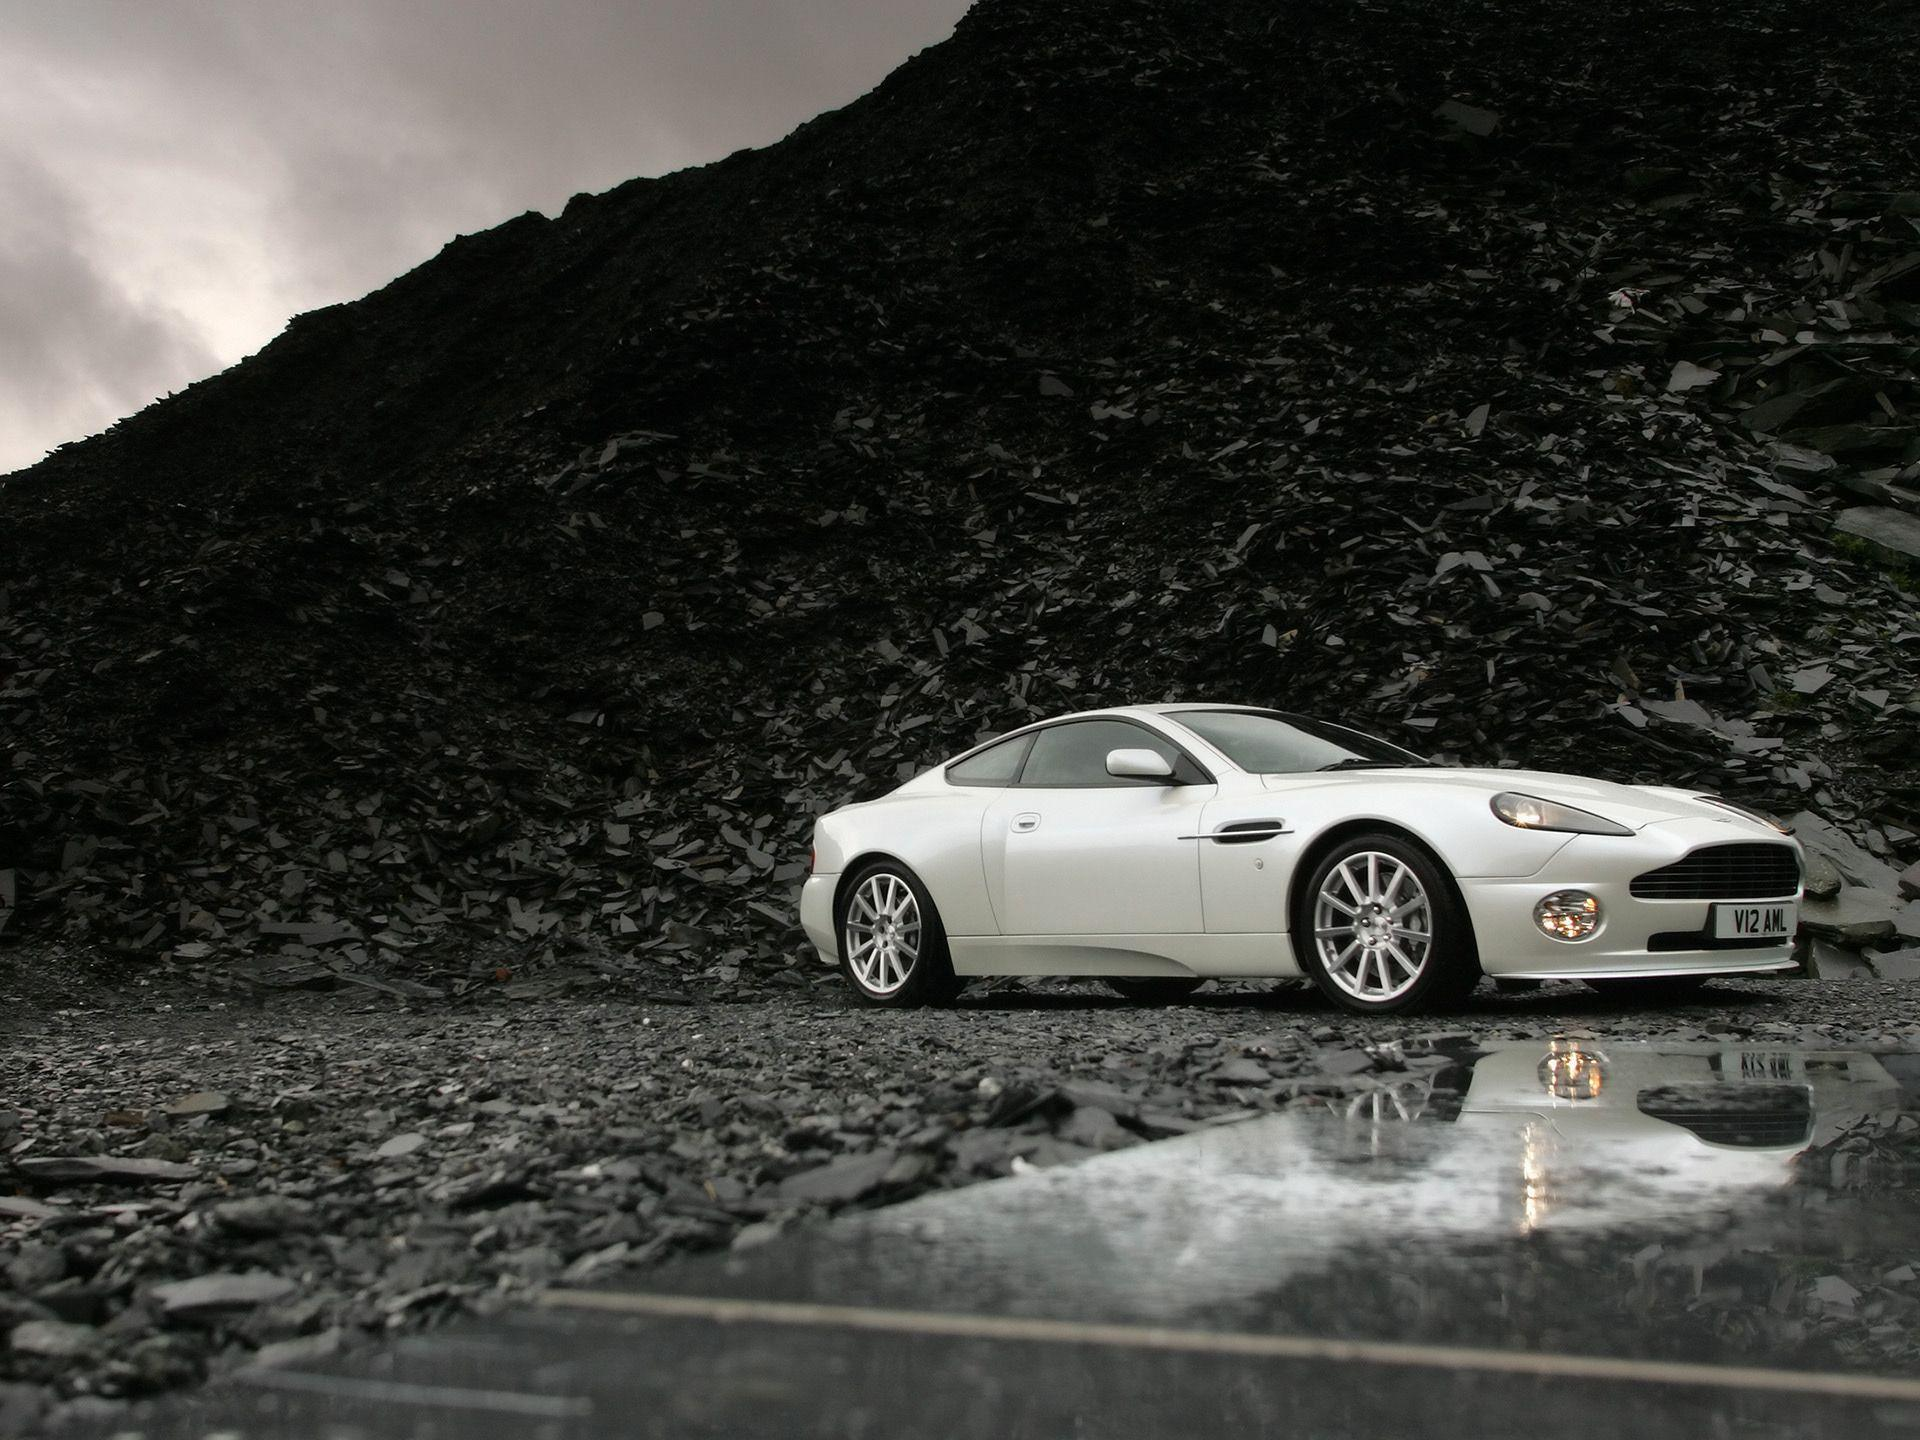 Aston Martin Vanquish Wallpapers, Pictures, Image